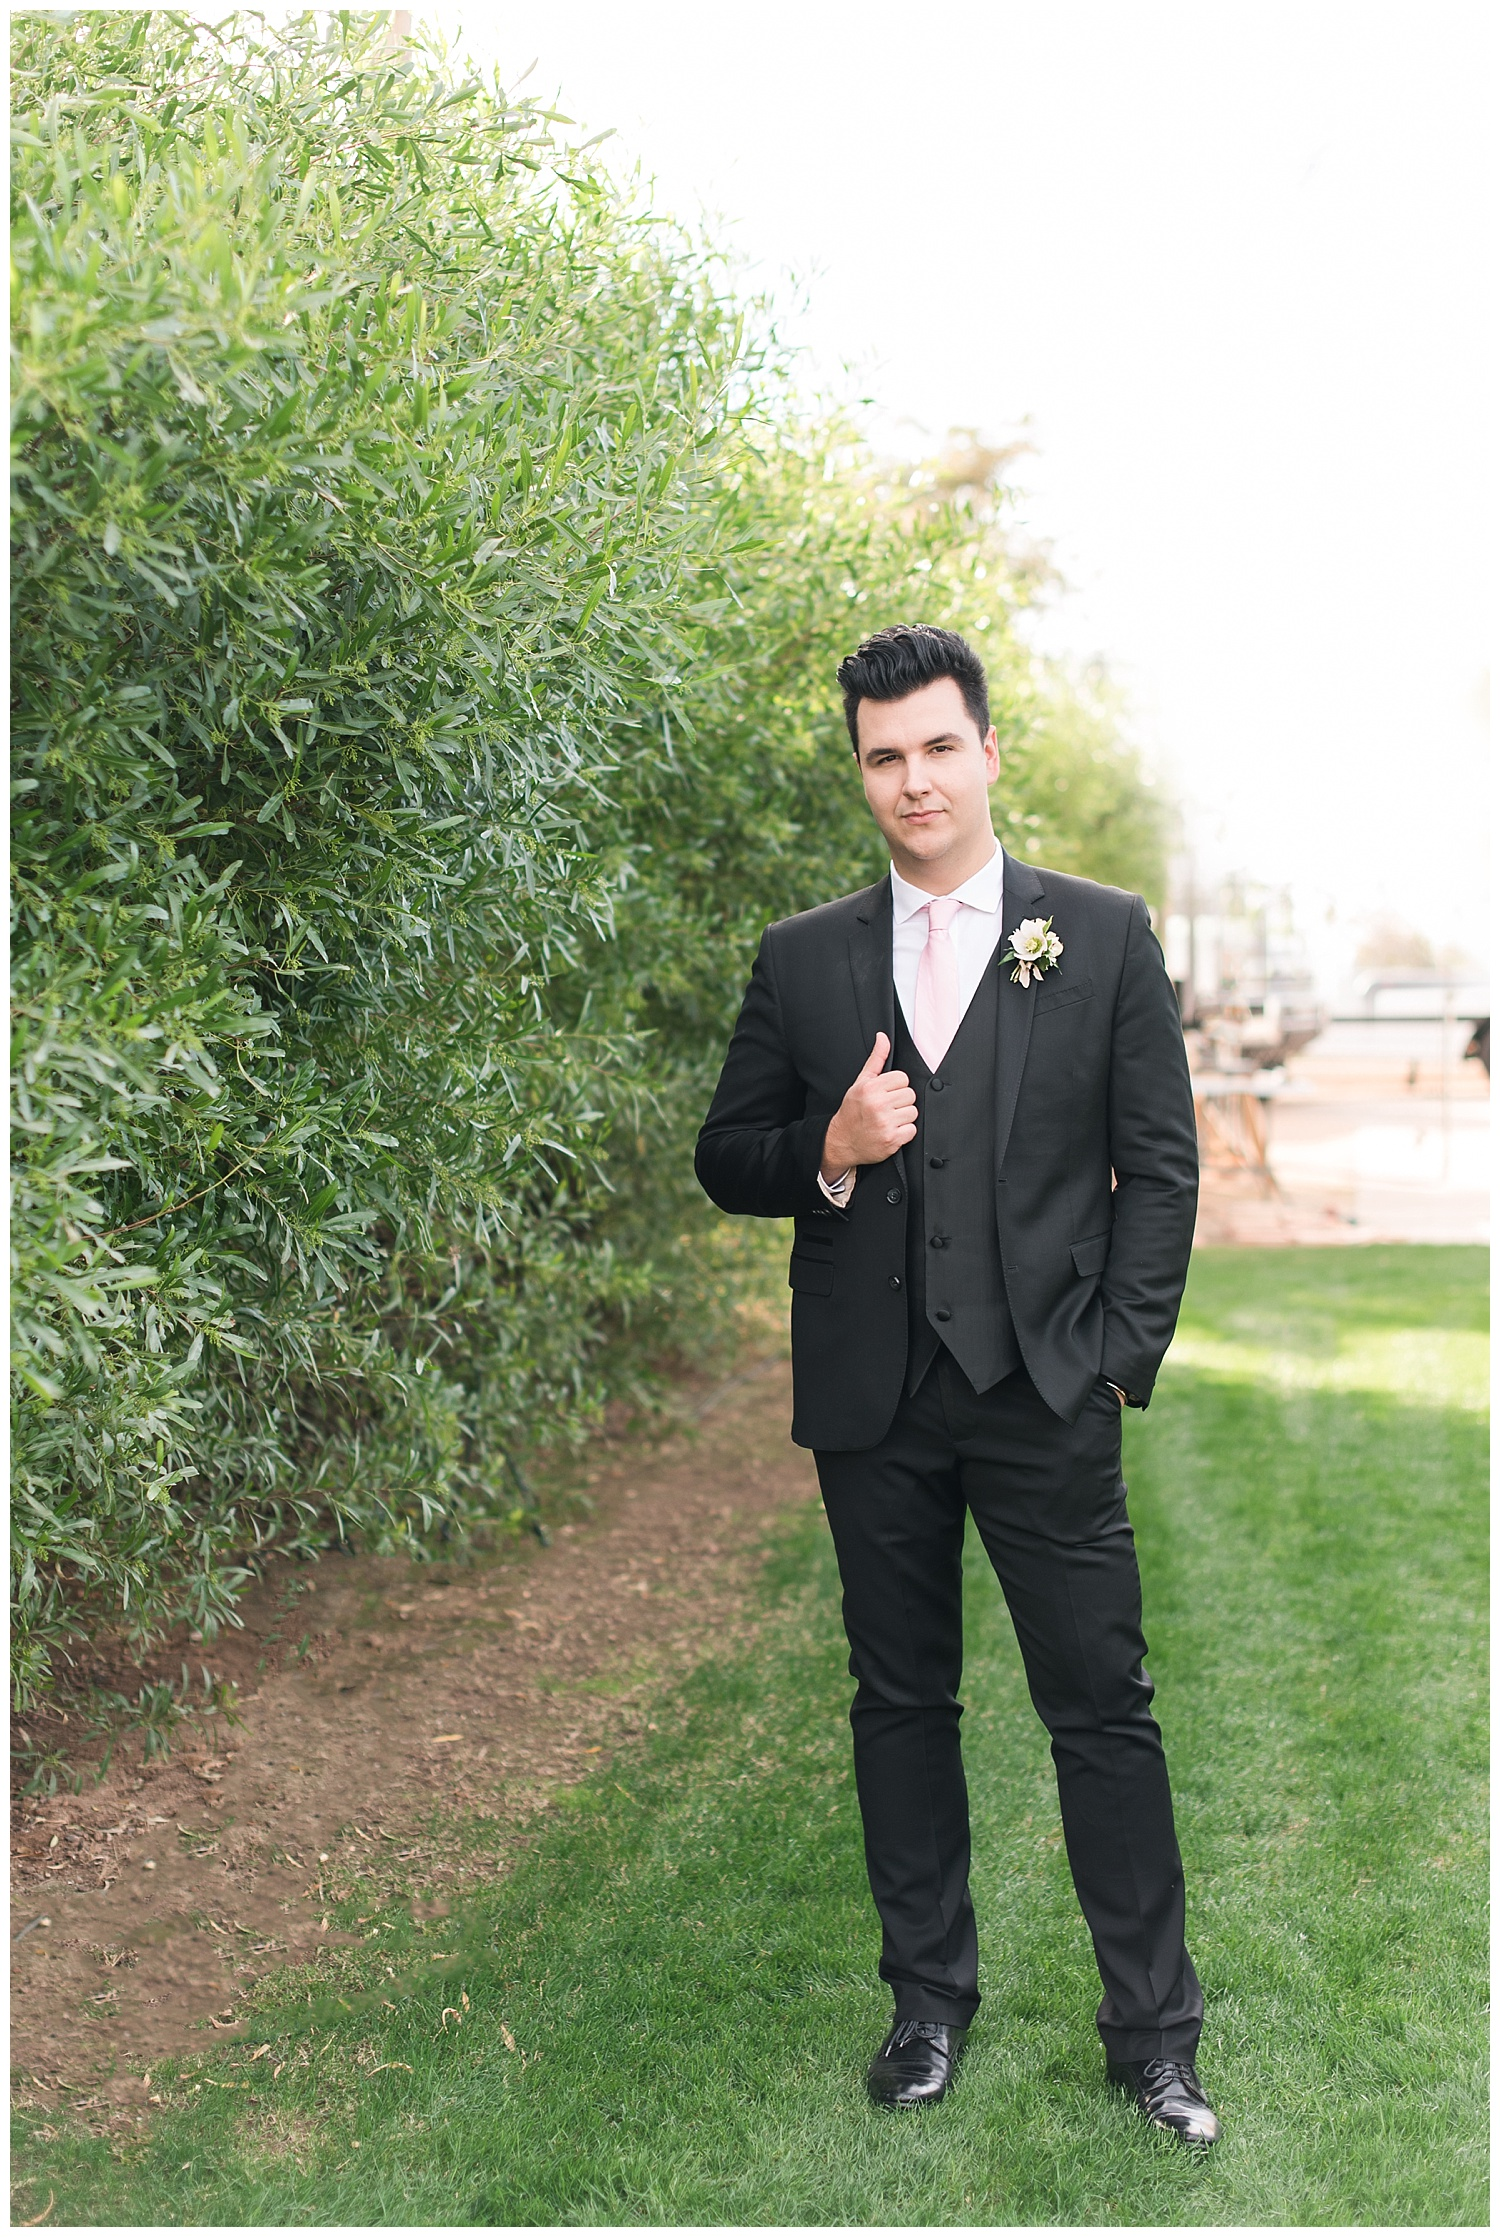 Groom Slaven wearing his own fitted and dashing suit, photographed at Gather Estate in Mesa, Arizona.